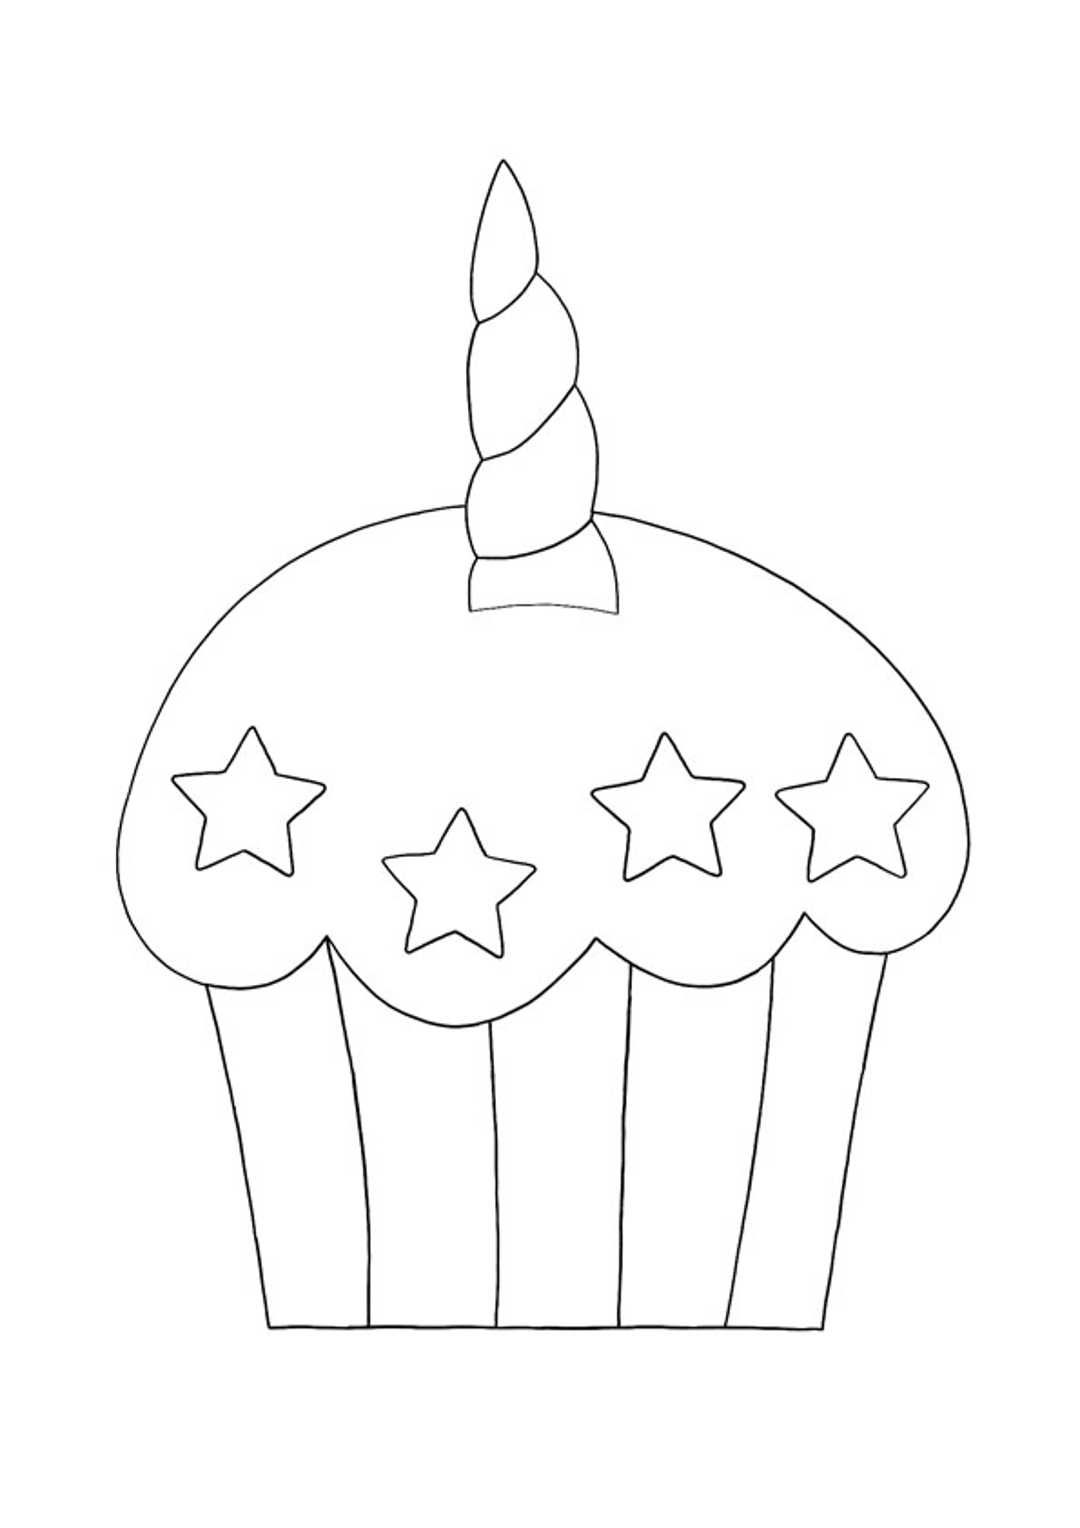 Unicorn Cake Coloring Pages In 2020 Mermaid Coloring Pages Unicorn Coloring Pages Cupcake Coloring Pages